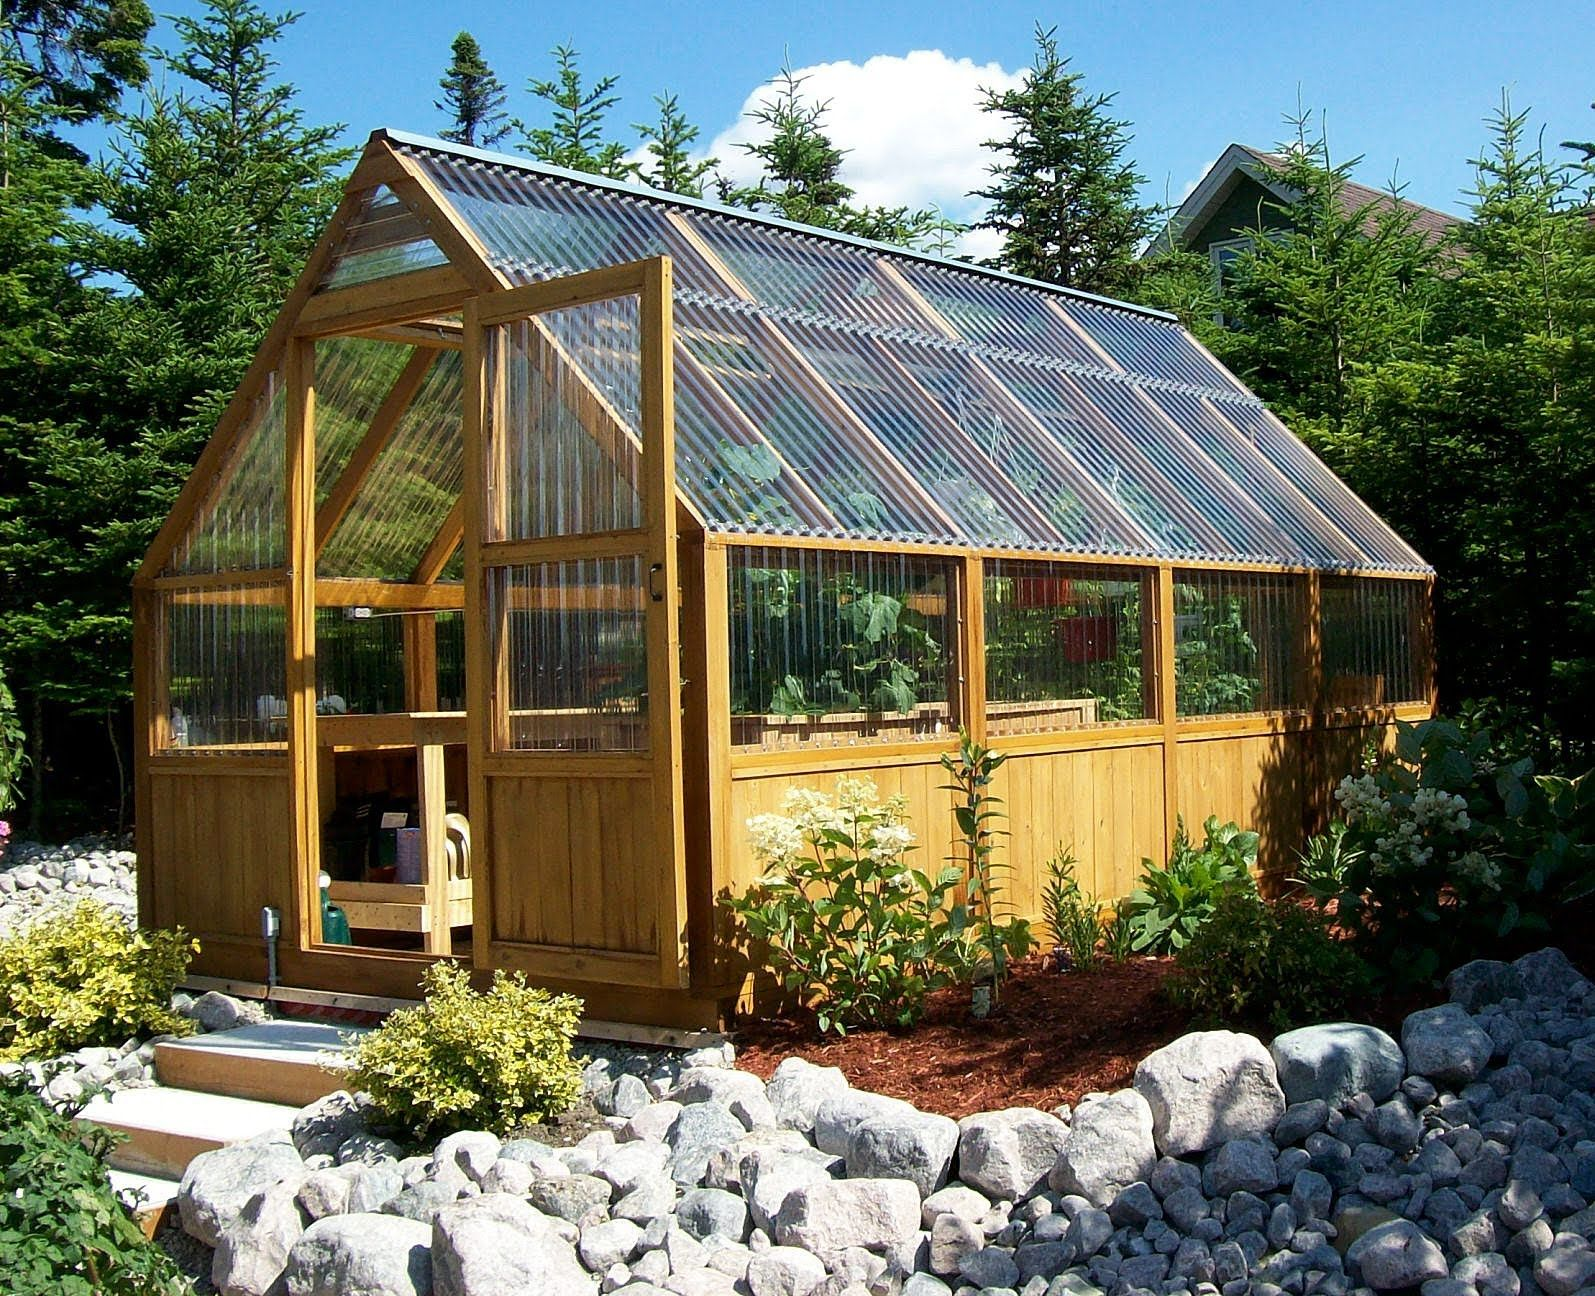 Greenhouse Plans: How To Build A Diy Hobby Greenhouse  Detailed Step By